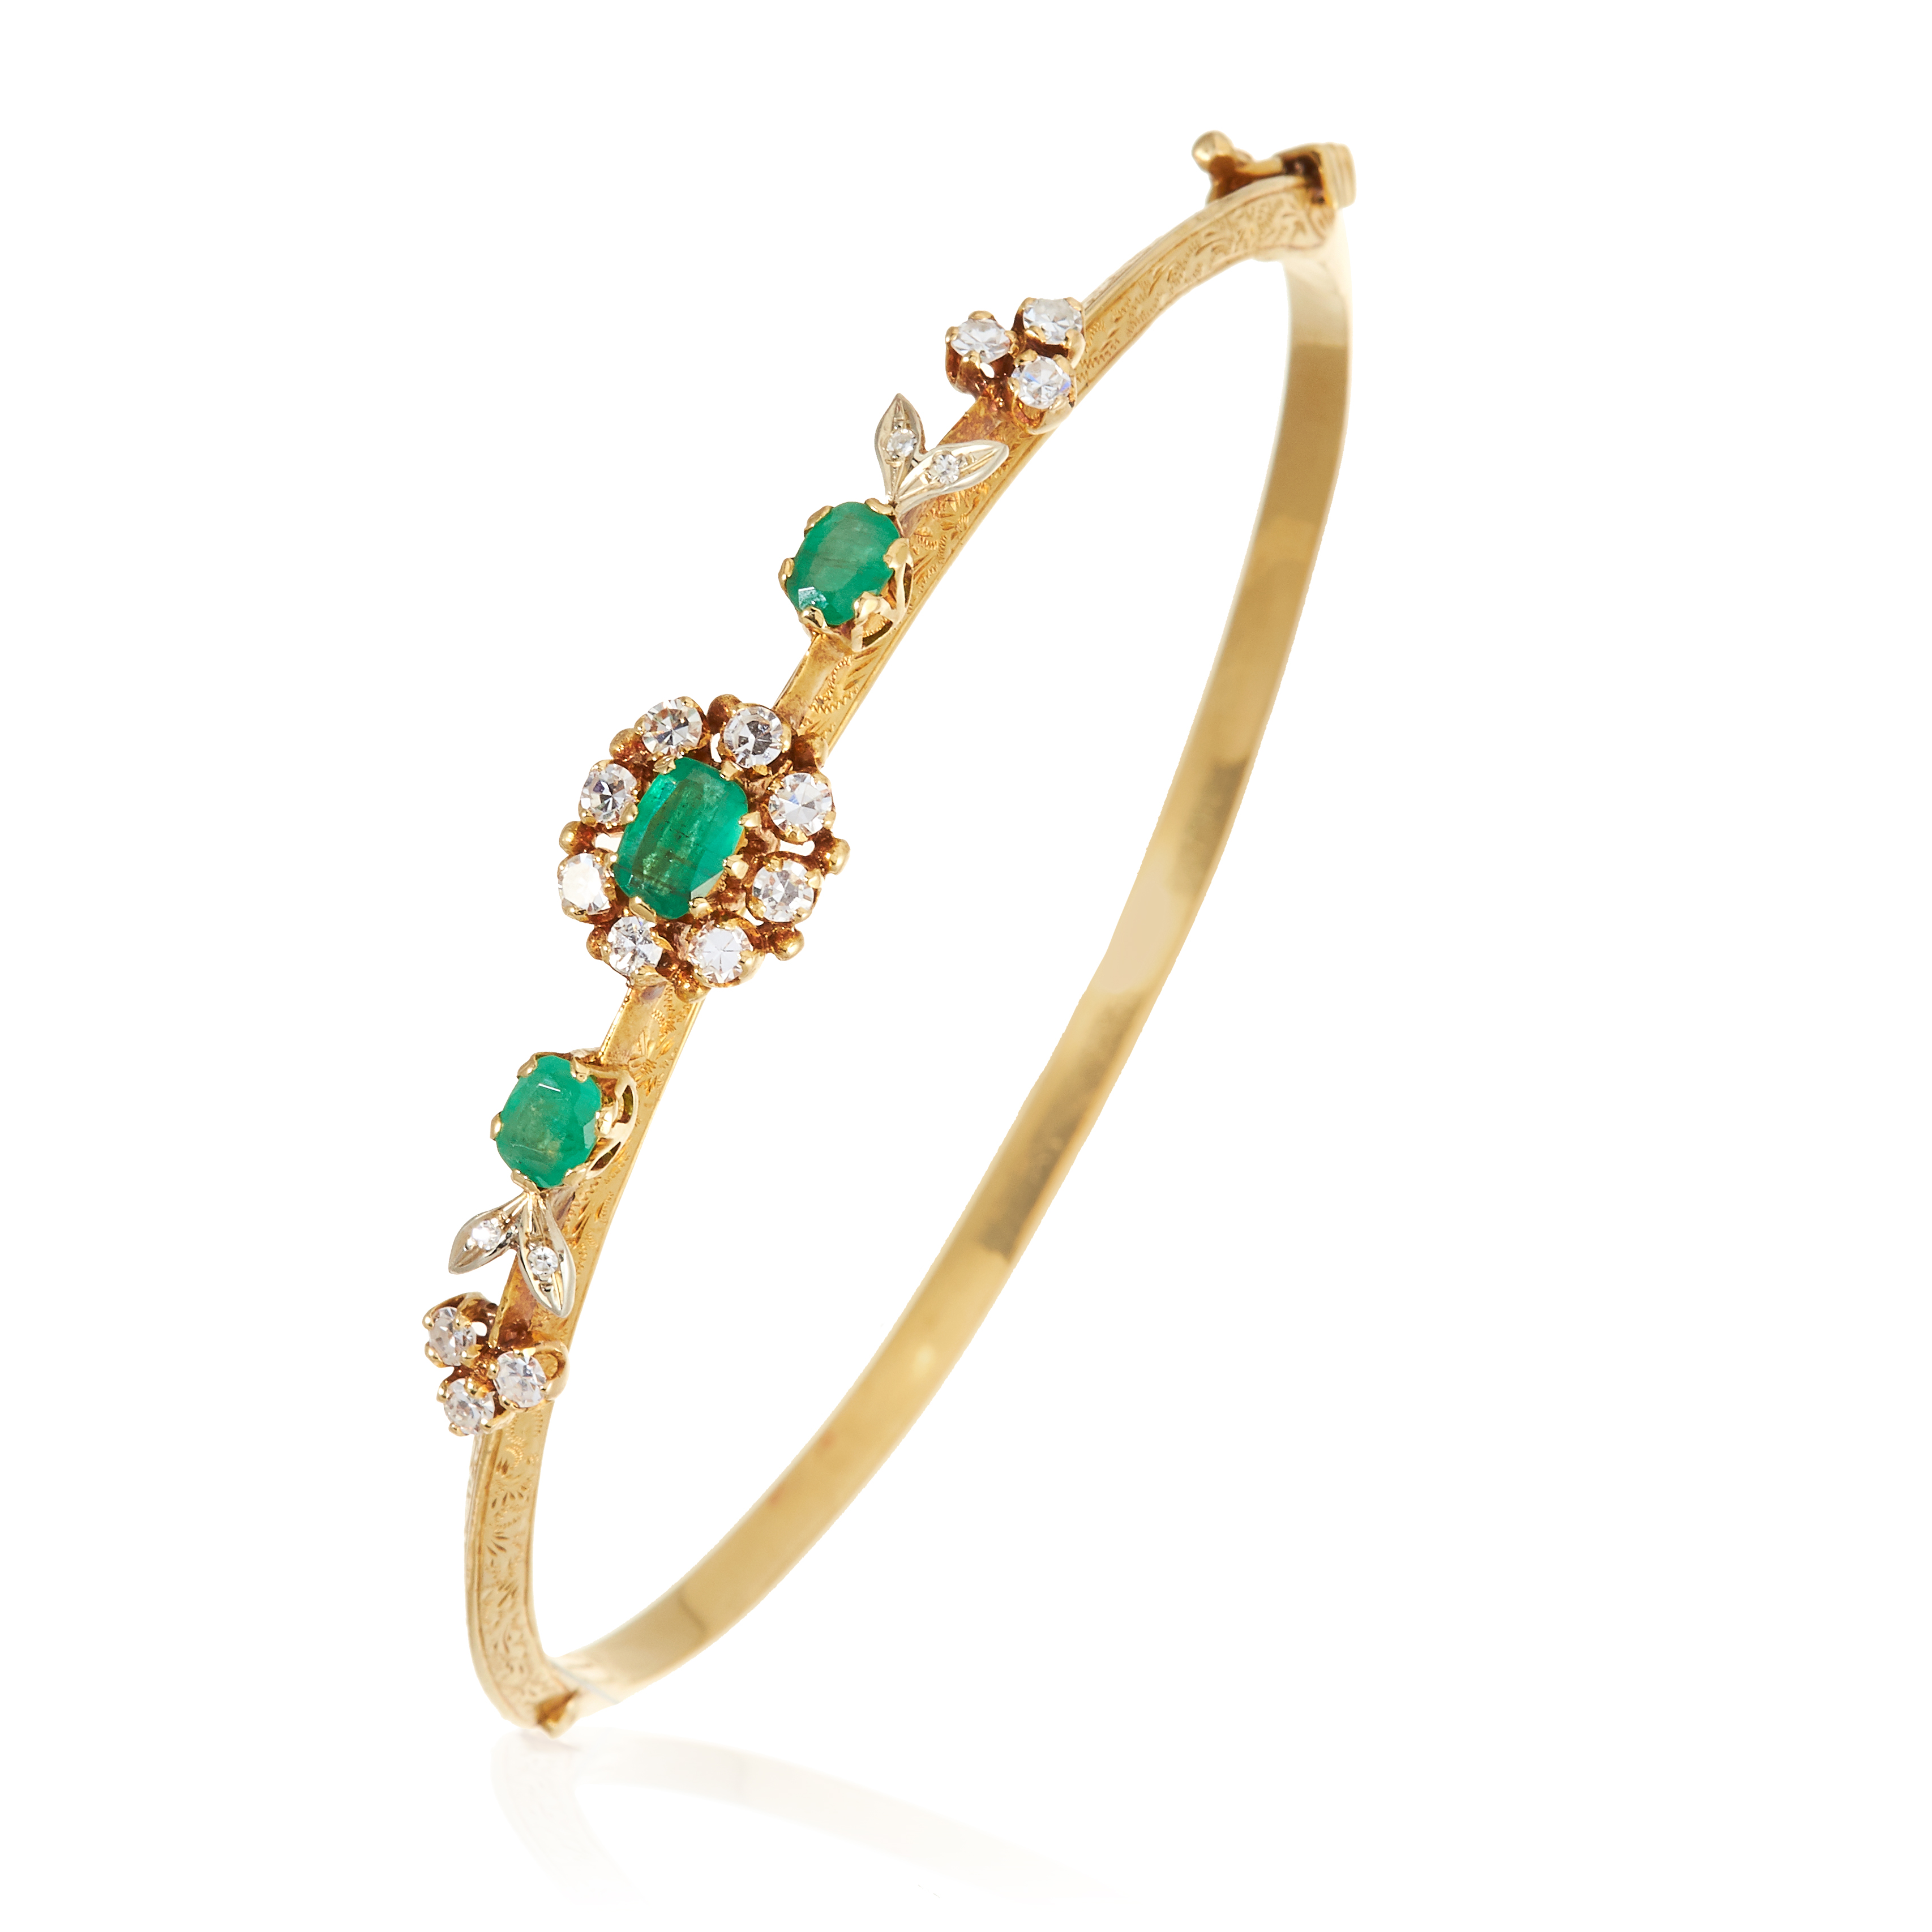 AN ANTIQUE EMERALD AND DIAMOND BANGLE in high carat yellow gold, comprising of three central oval